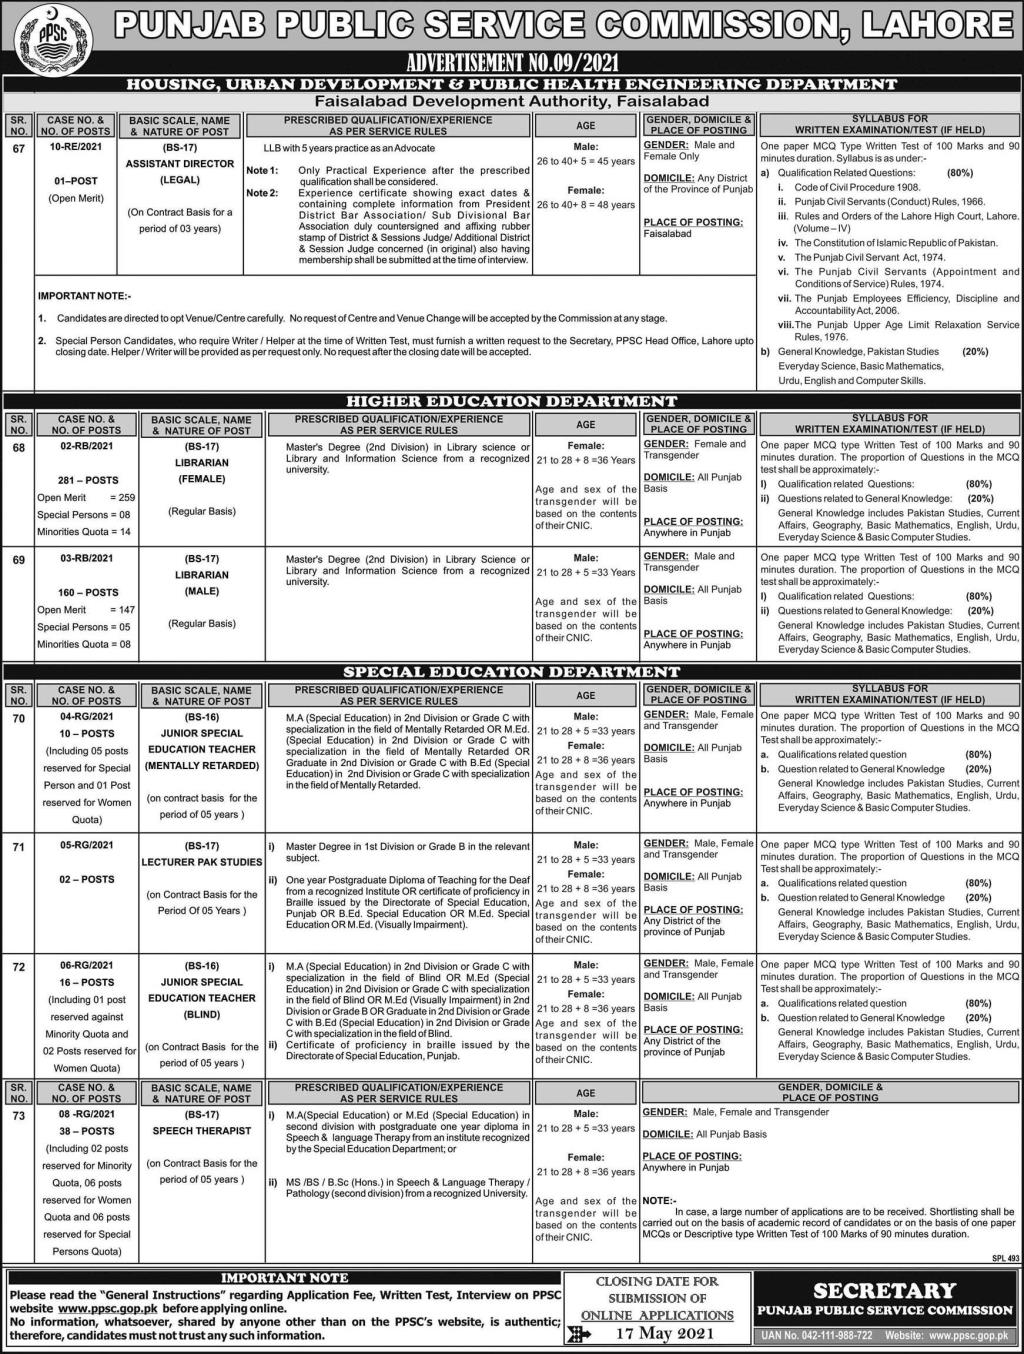 PPSC Jobs May 2021